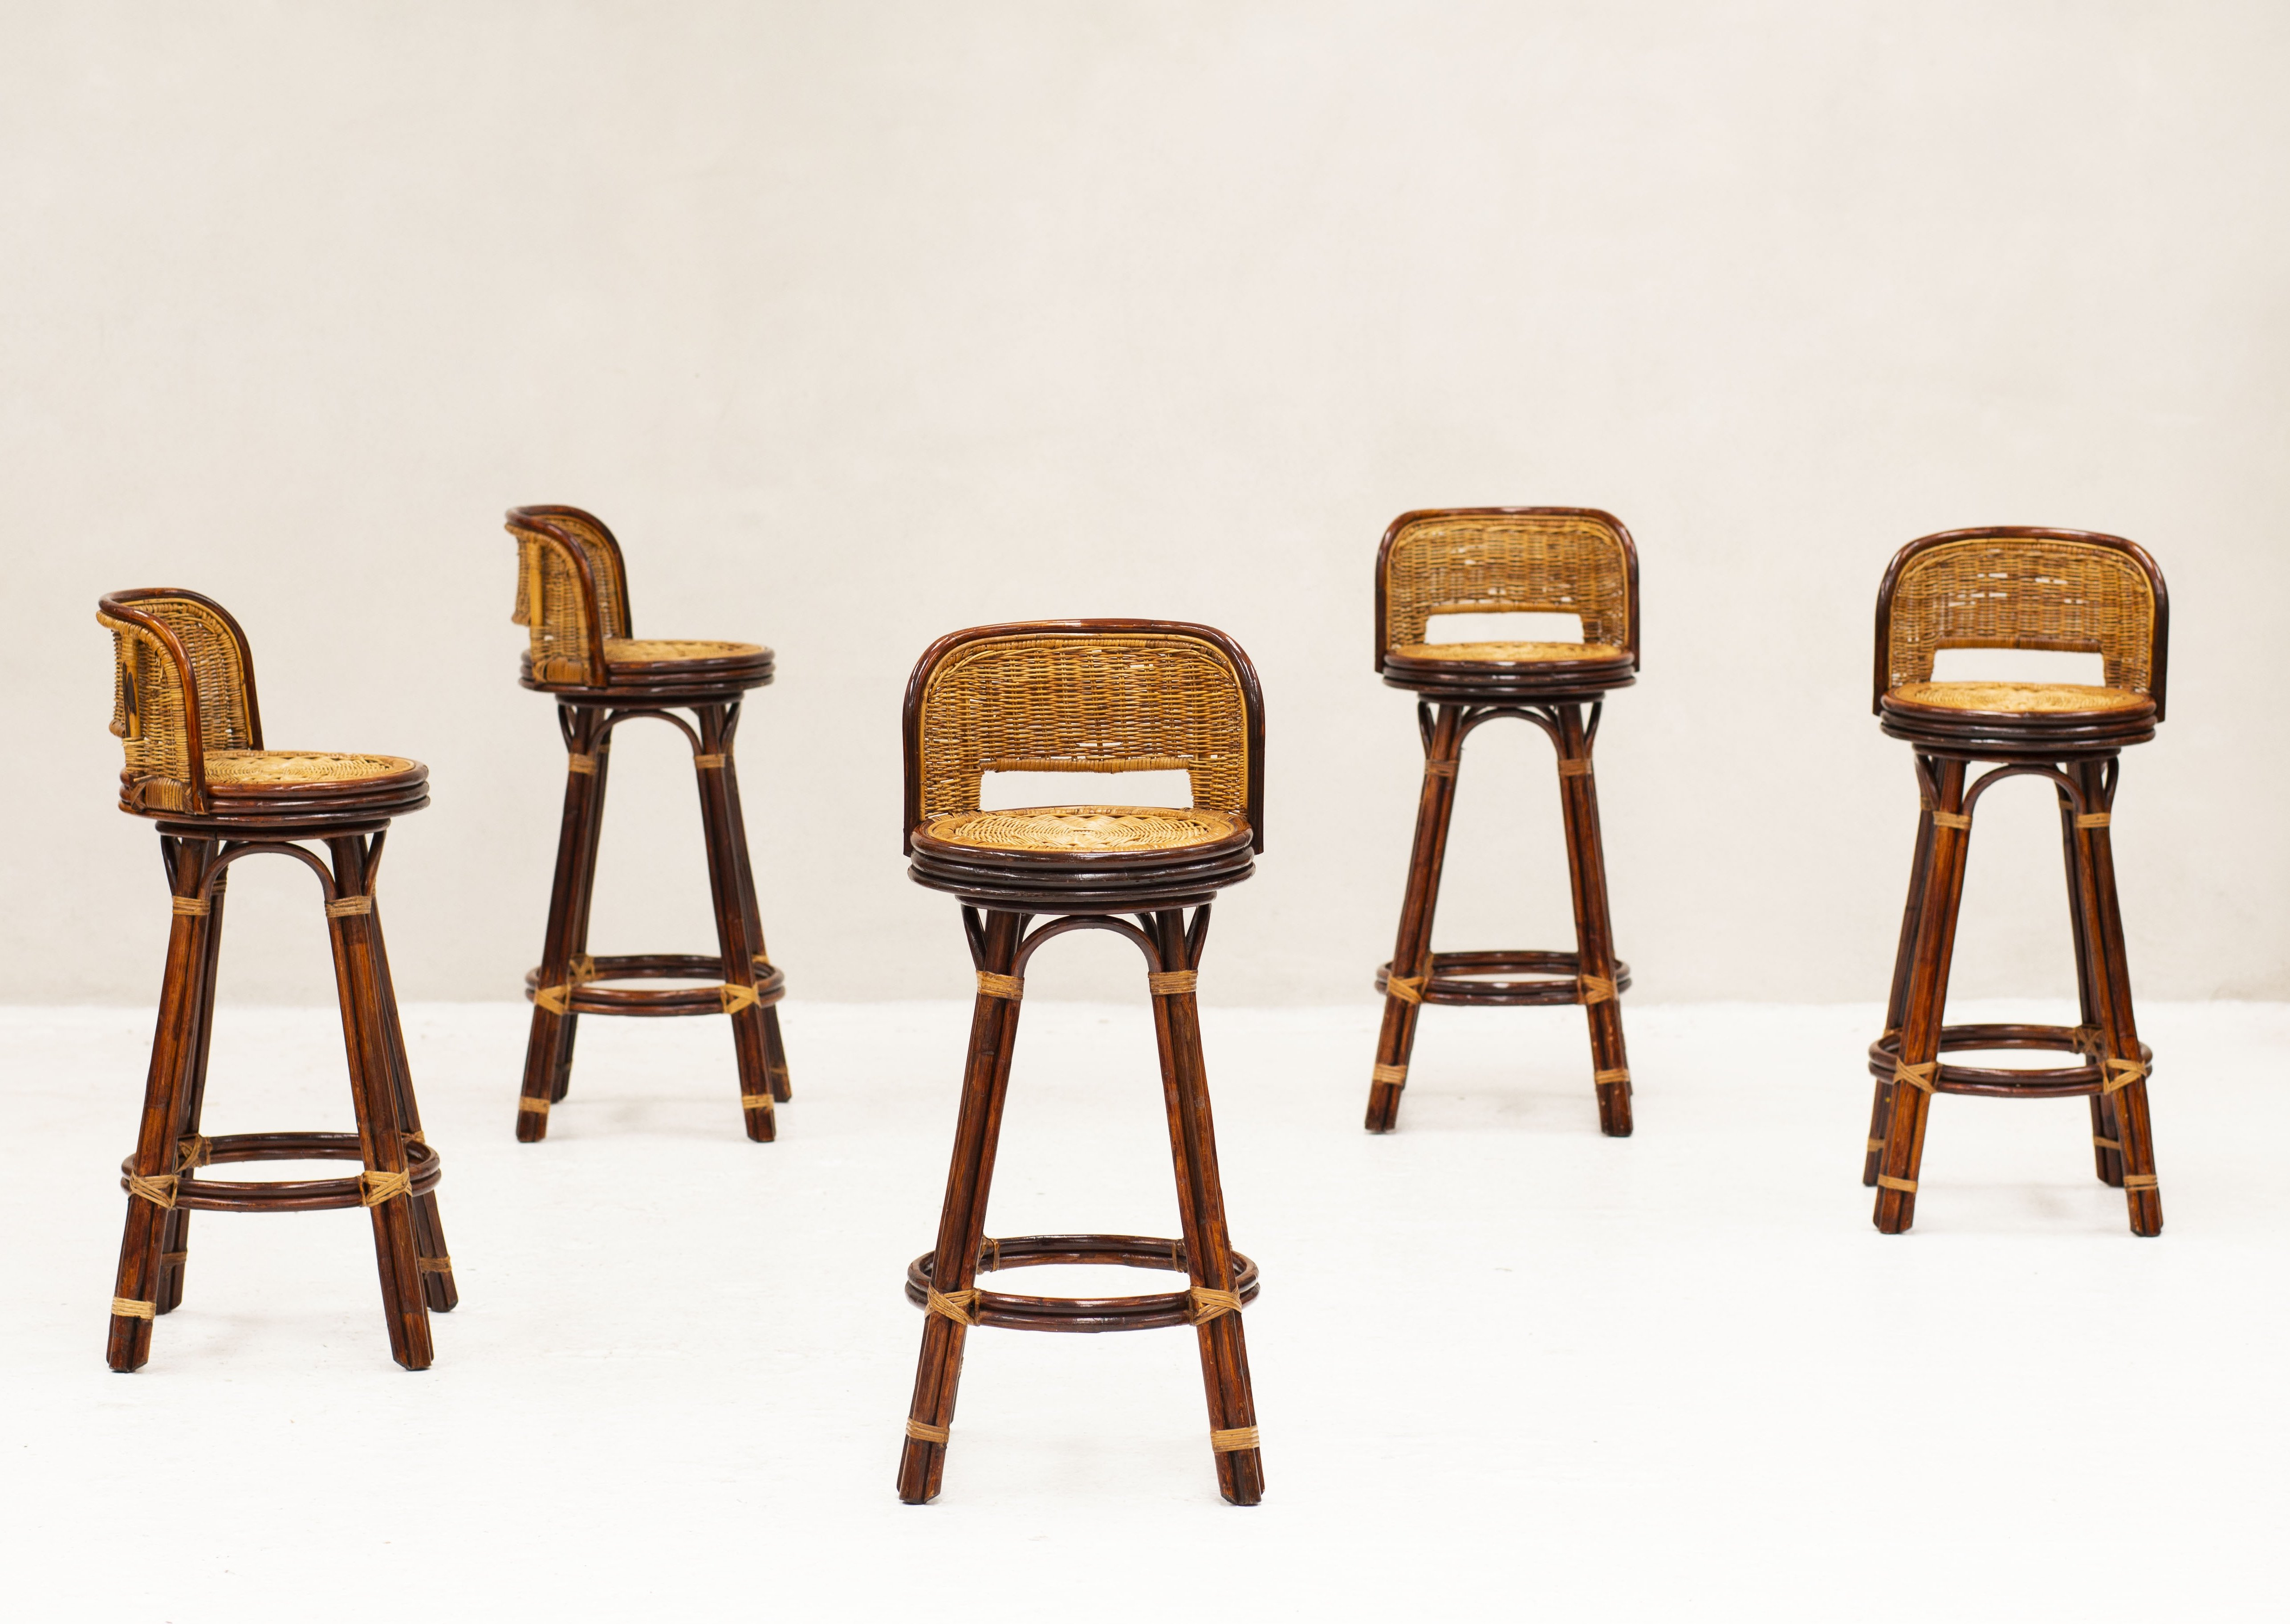 Picture of: Set Of 5 Swivel Bar Stools In Bamboo Rattan 1970s 131049